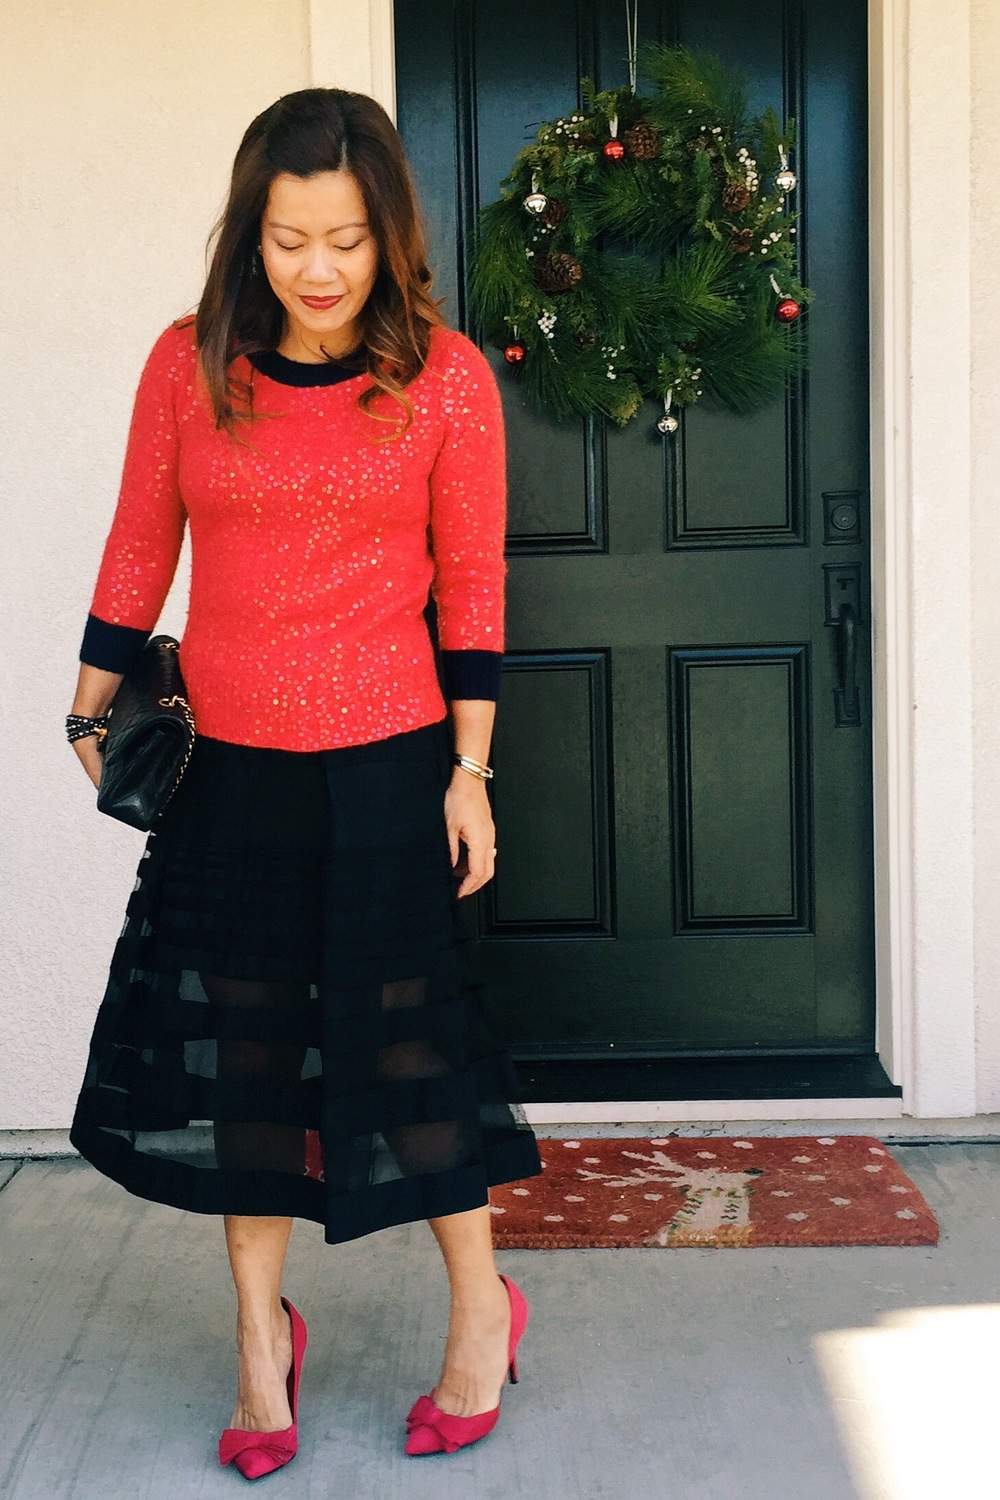 Holiday dressing. J. Crew sweater (old) / Tibi skirt (old) / J ustfab  pumps (old)